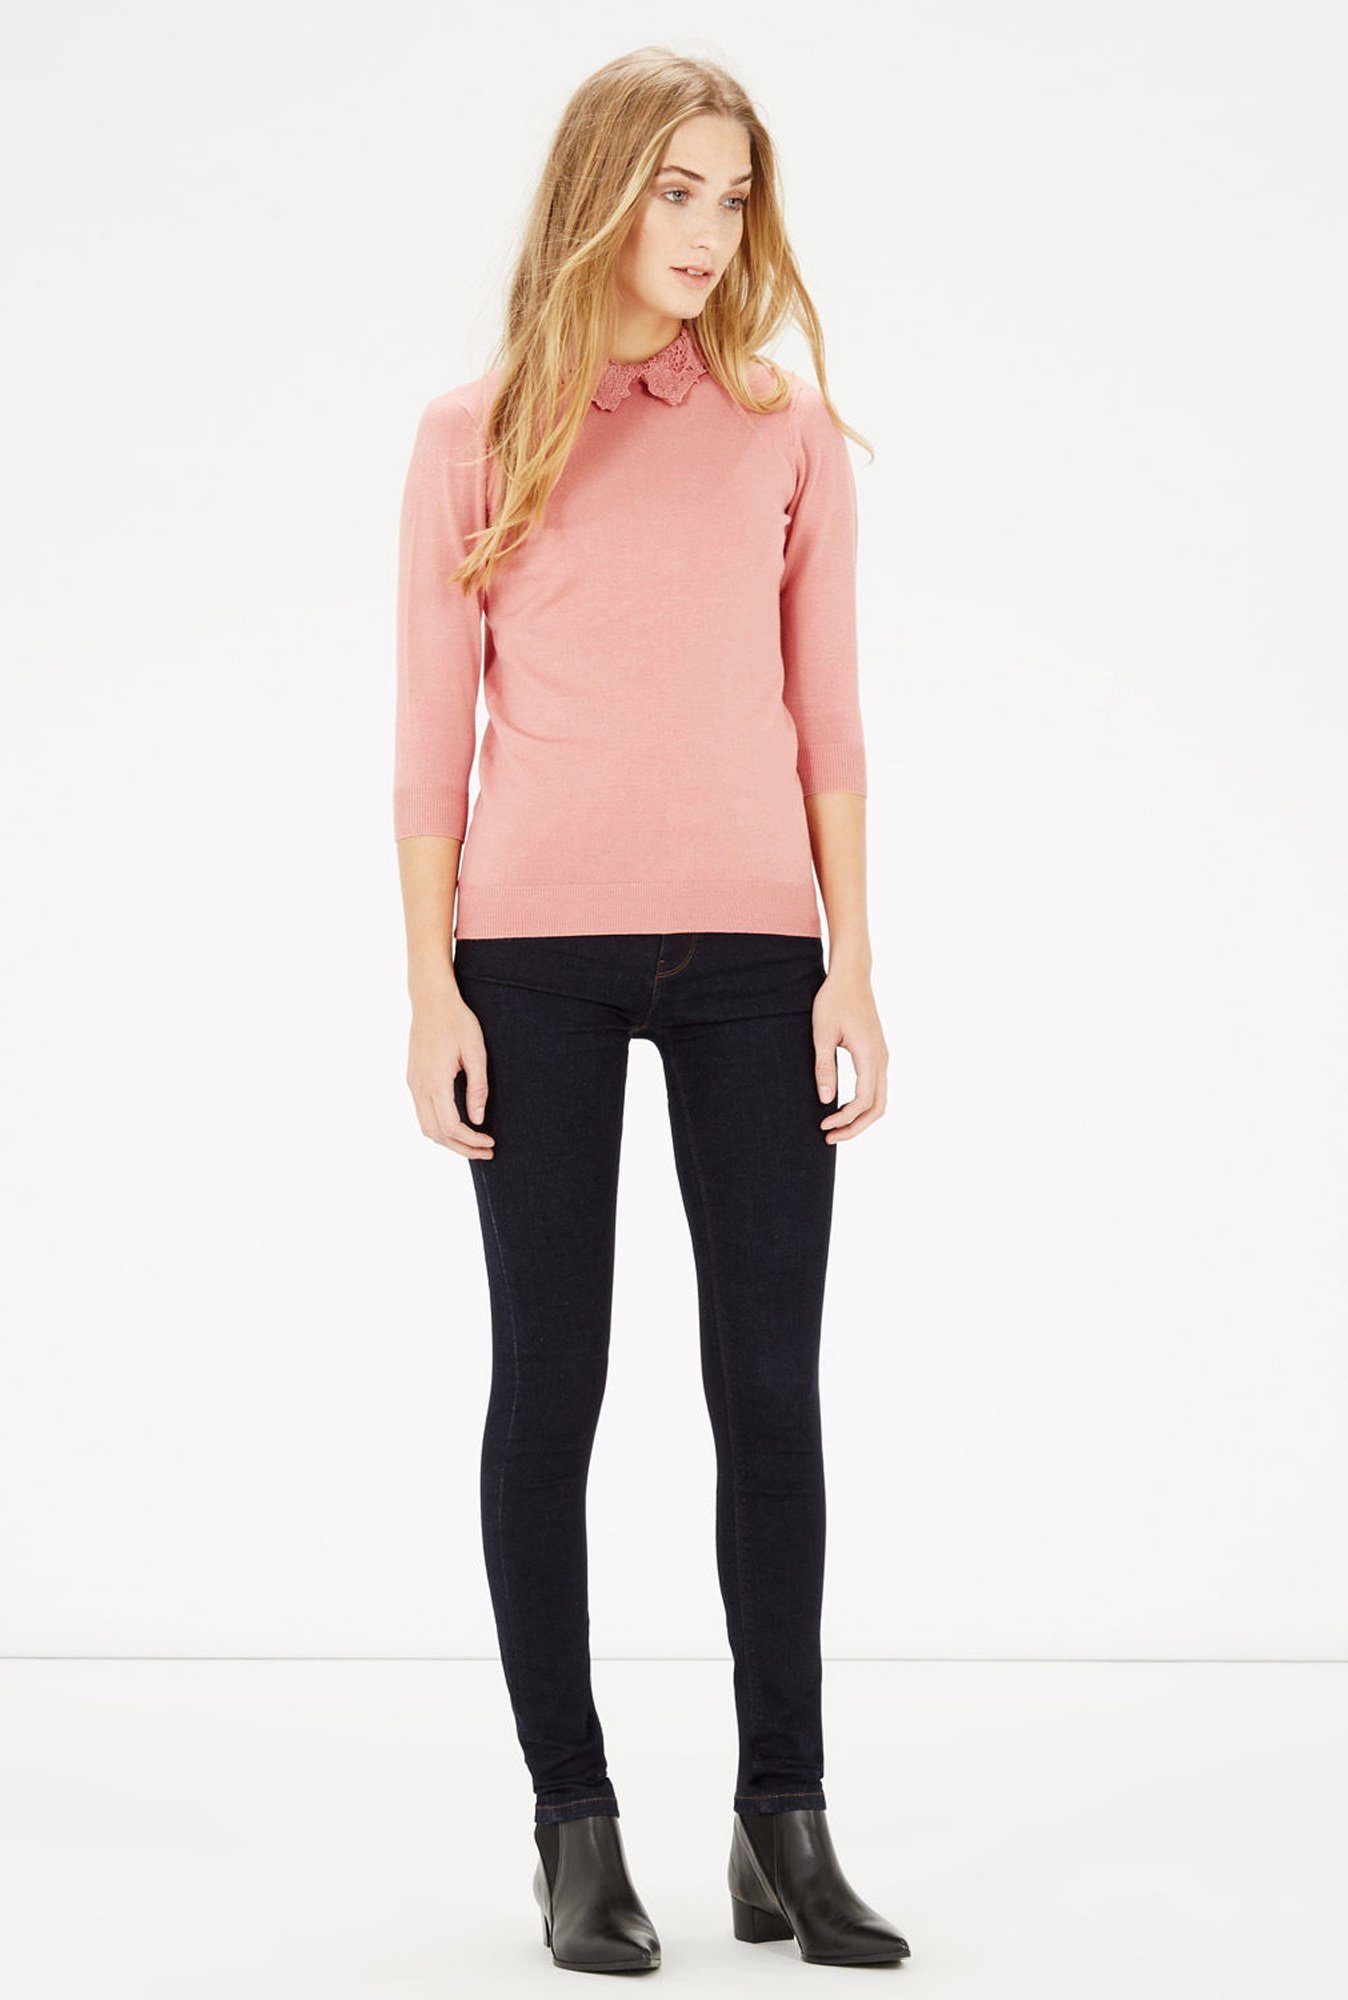 Warehouse Pink Lace Collar Top